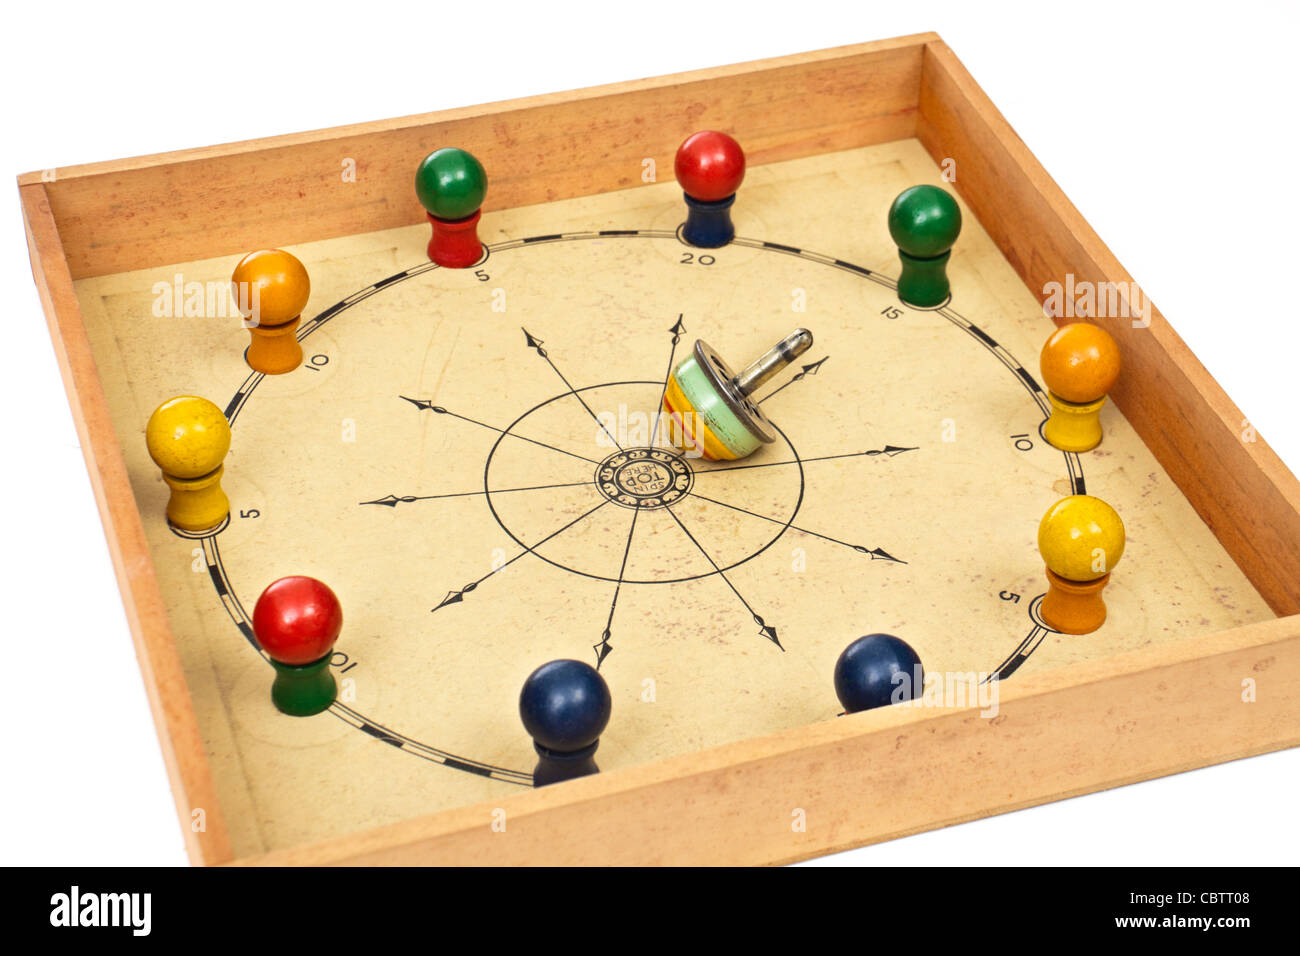 Rare 1937 vintage 'Wiggle-Waggle, the Rambling Top Game' by Milton Bradley (No 4375) - Stock Image